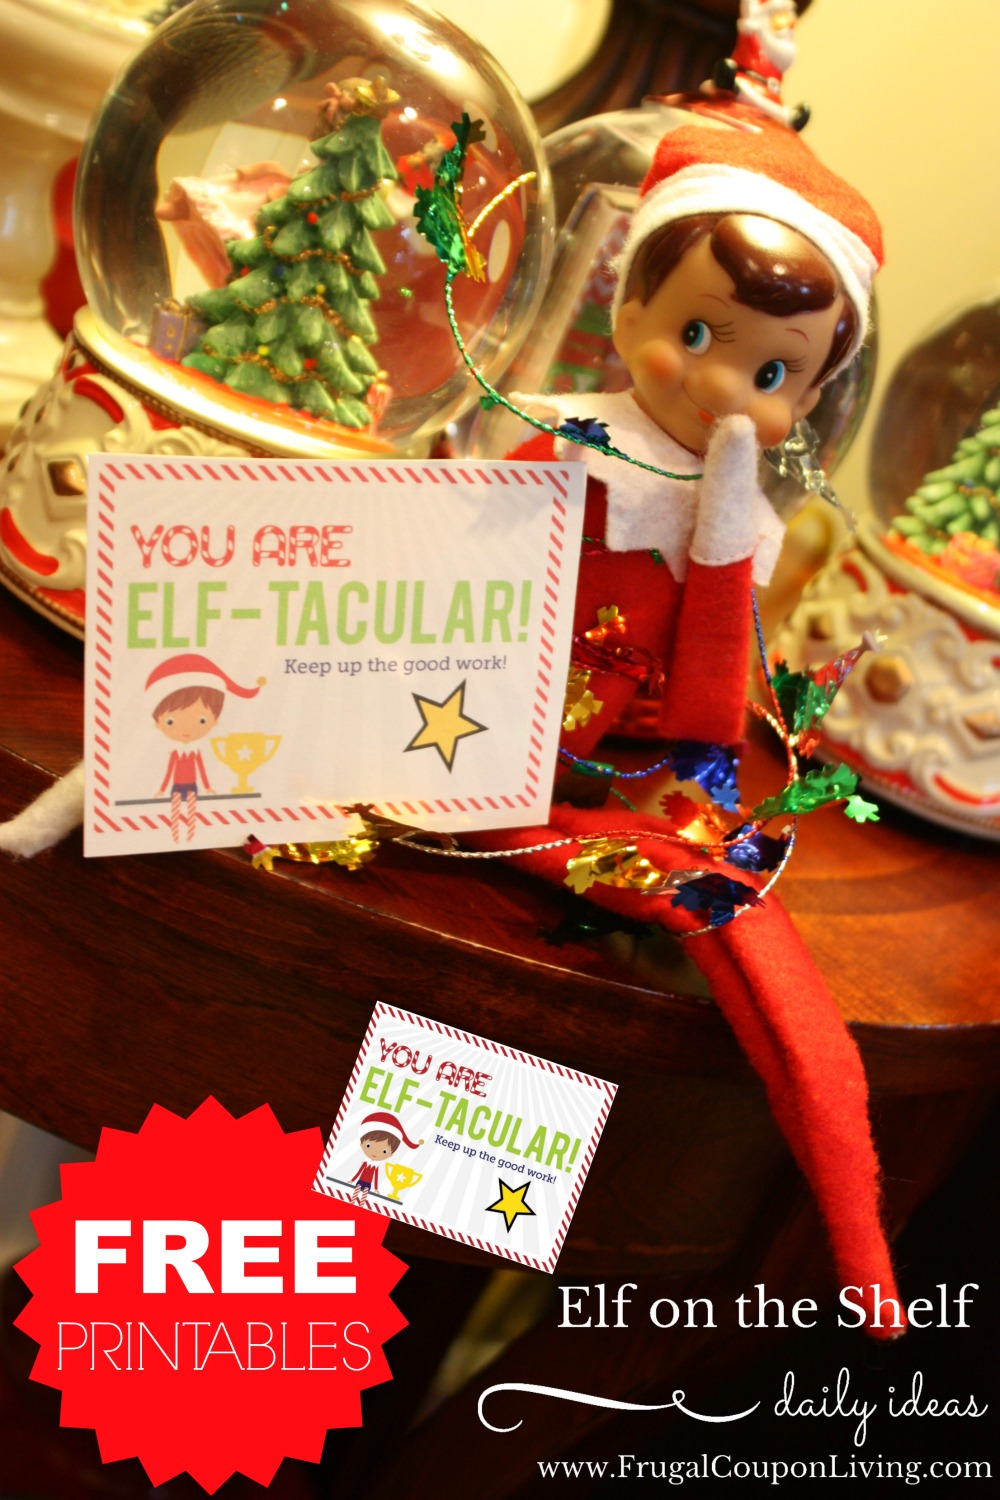 Elf in store coupons